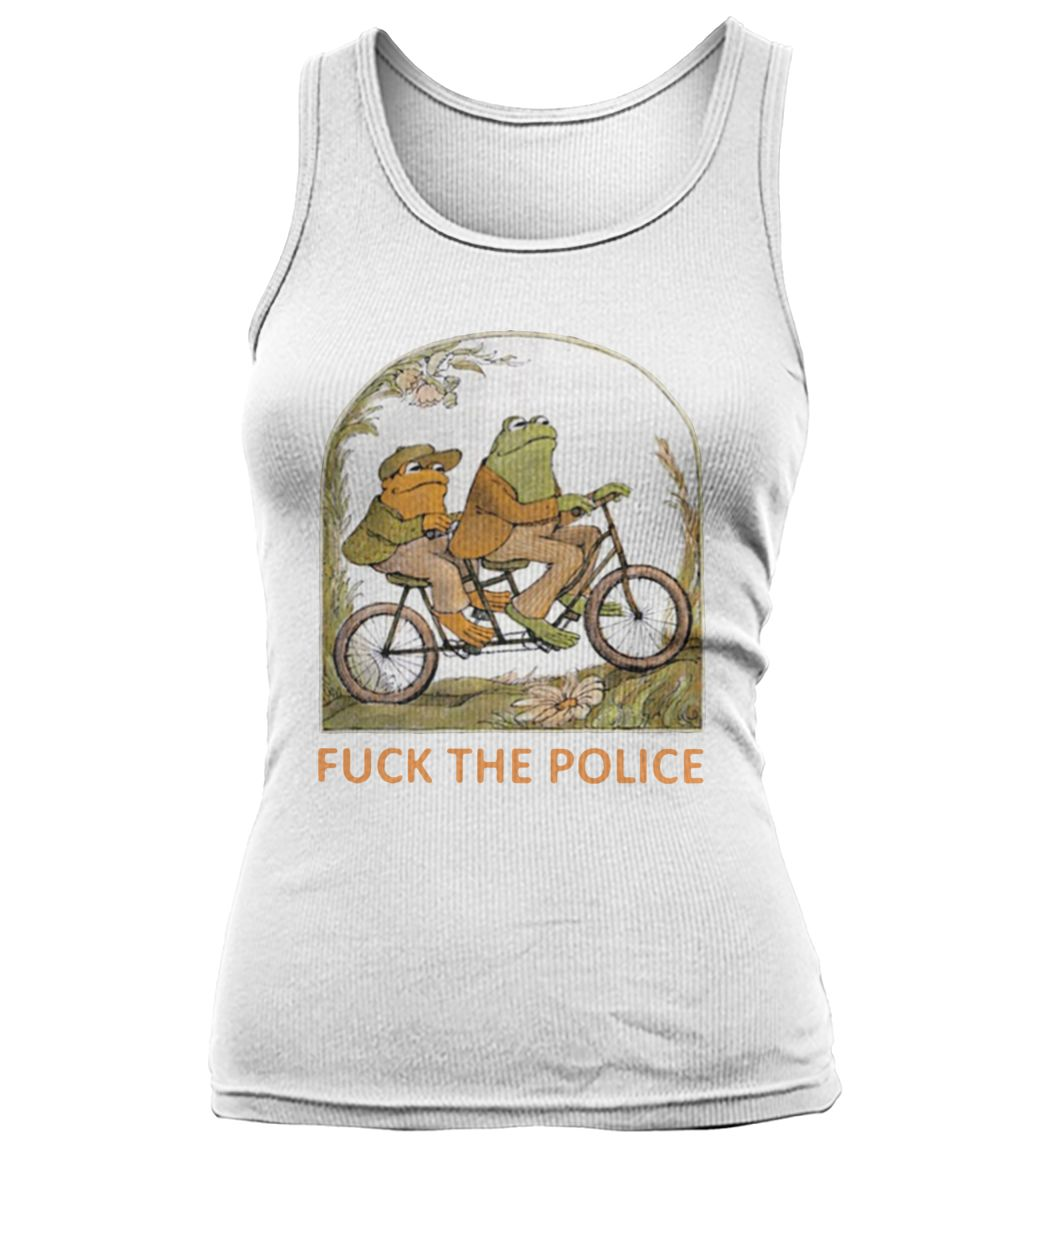 Frog and toad fuck the police women's tank top